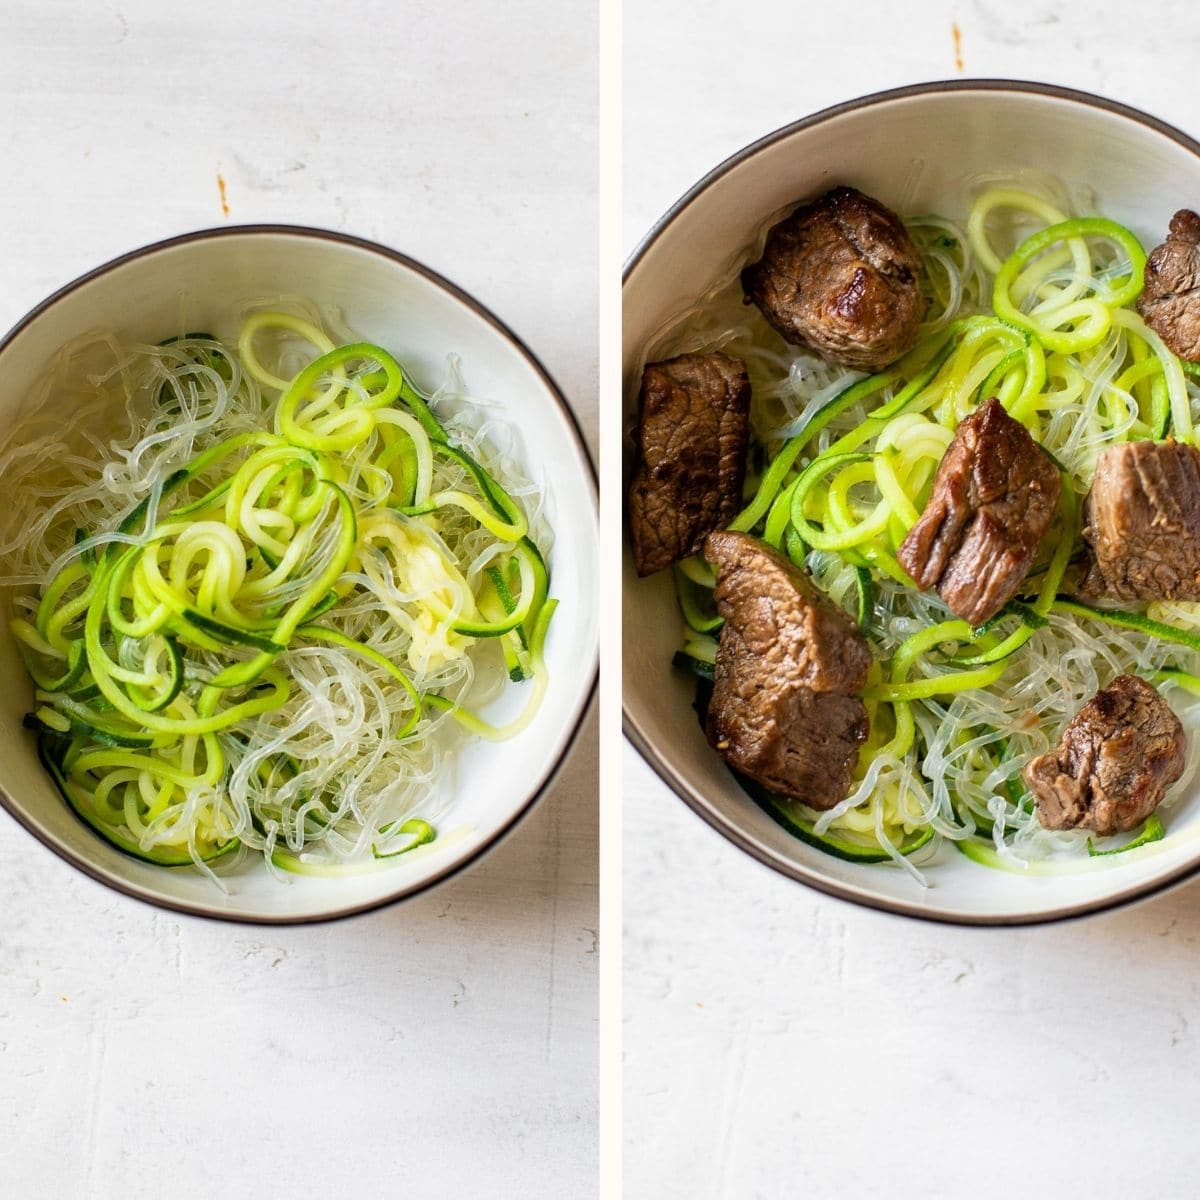 zucchini noodles in a bowl topped with cooked beef